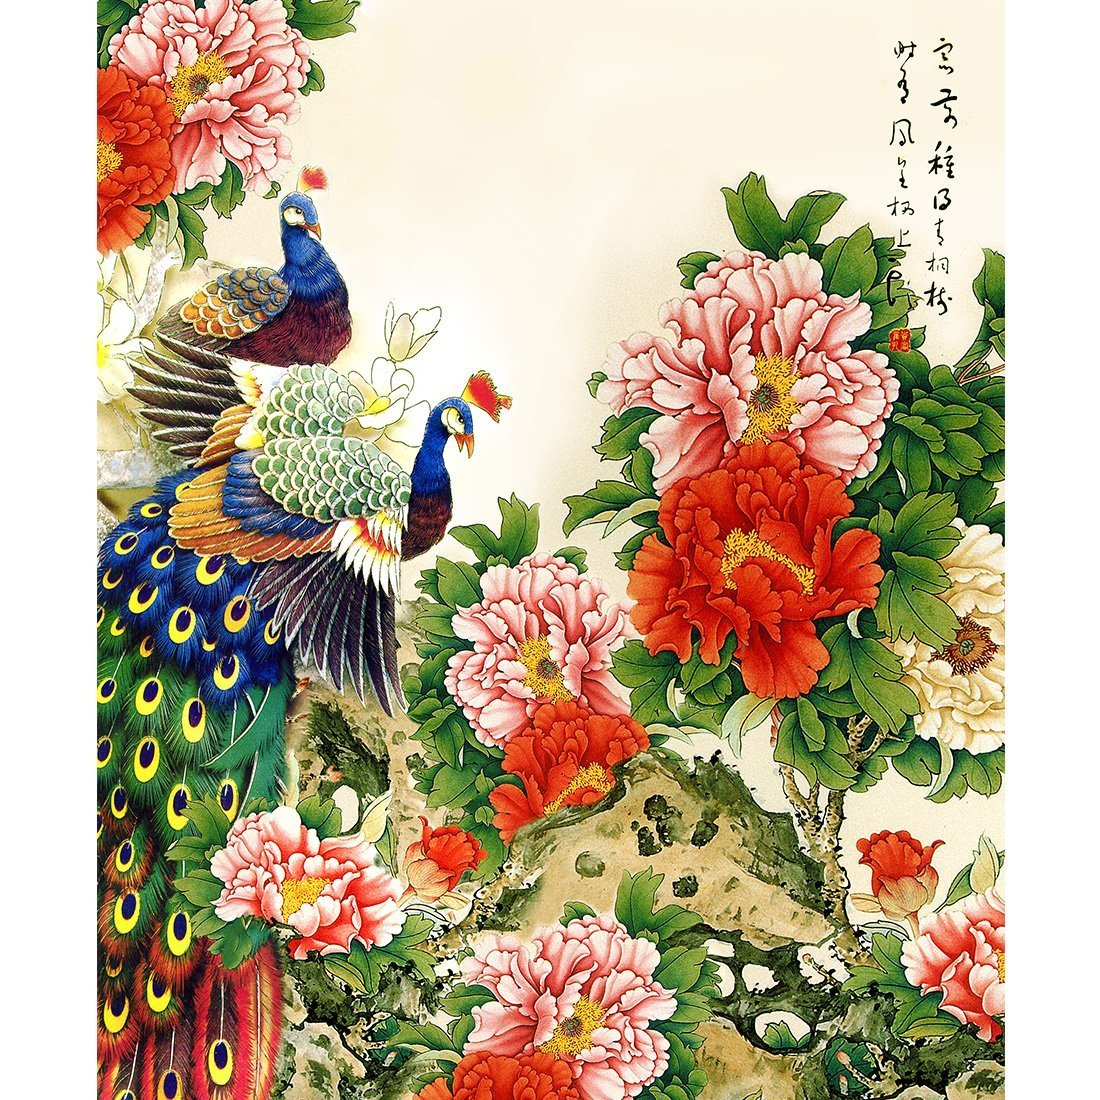 Meishe Art Vintage Poster Print Chinese Traditional Painting Colorful Peacock on Peony Flowers Branch Oriental Ancient Asian Watercolor Drawing Wall Decor